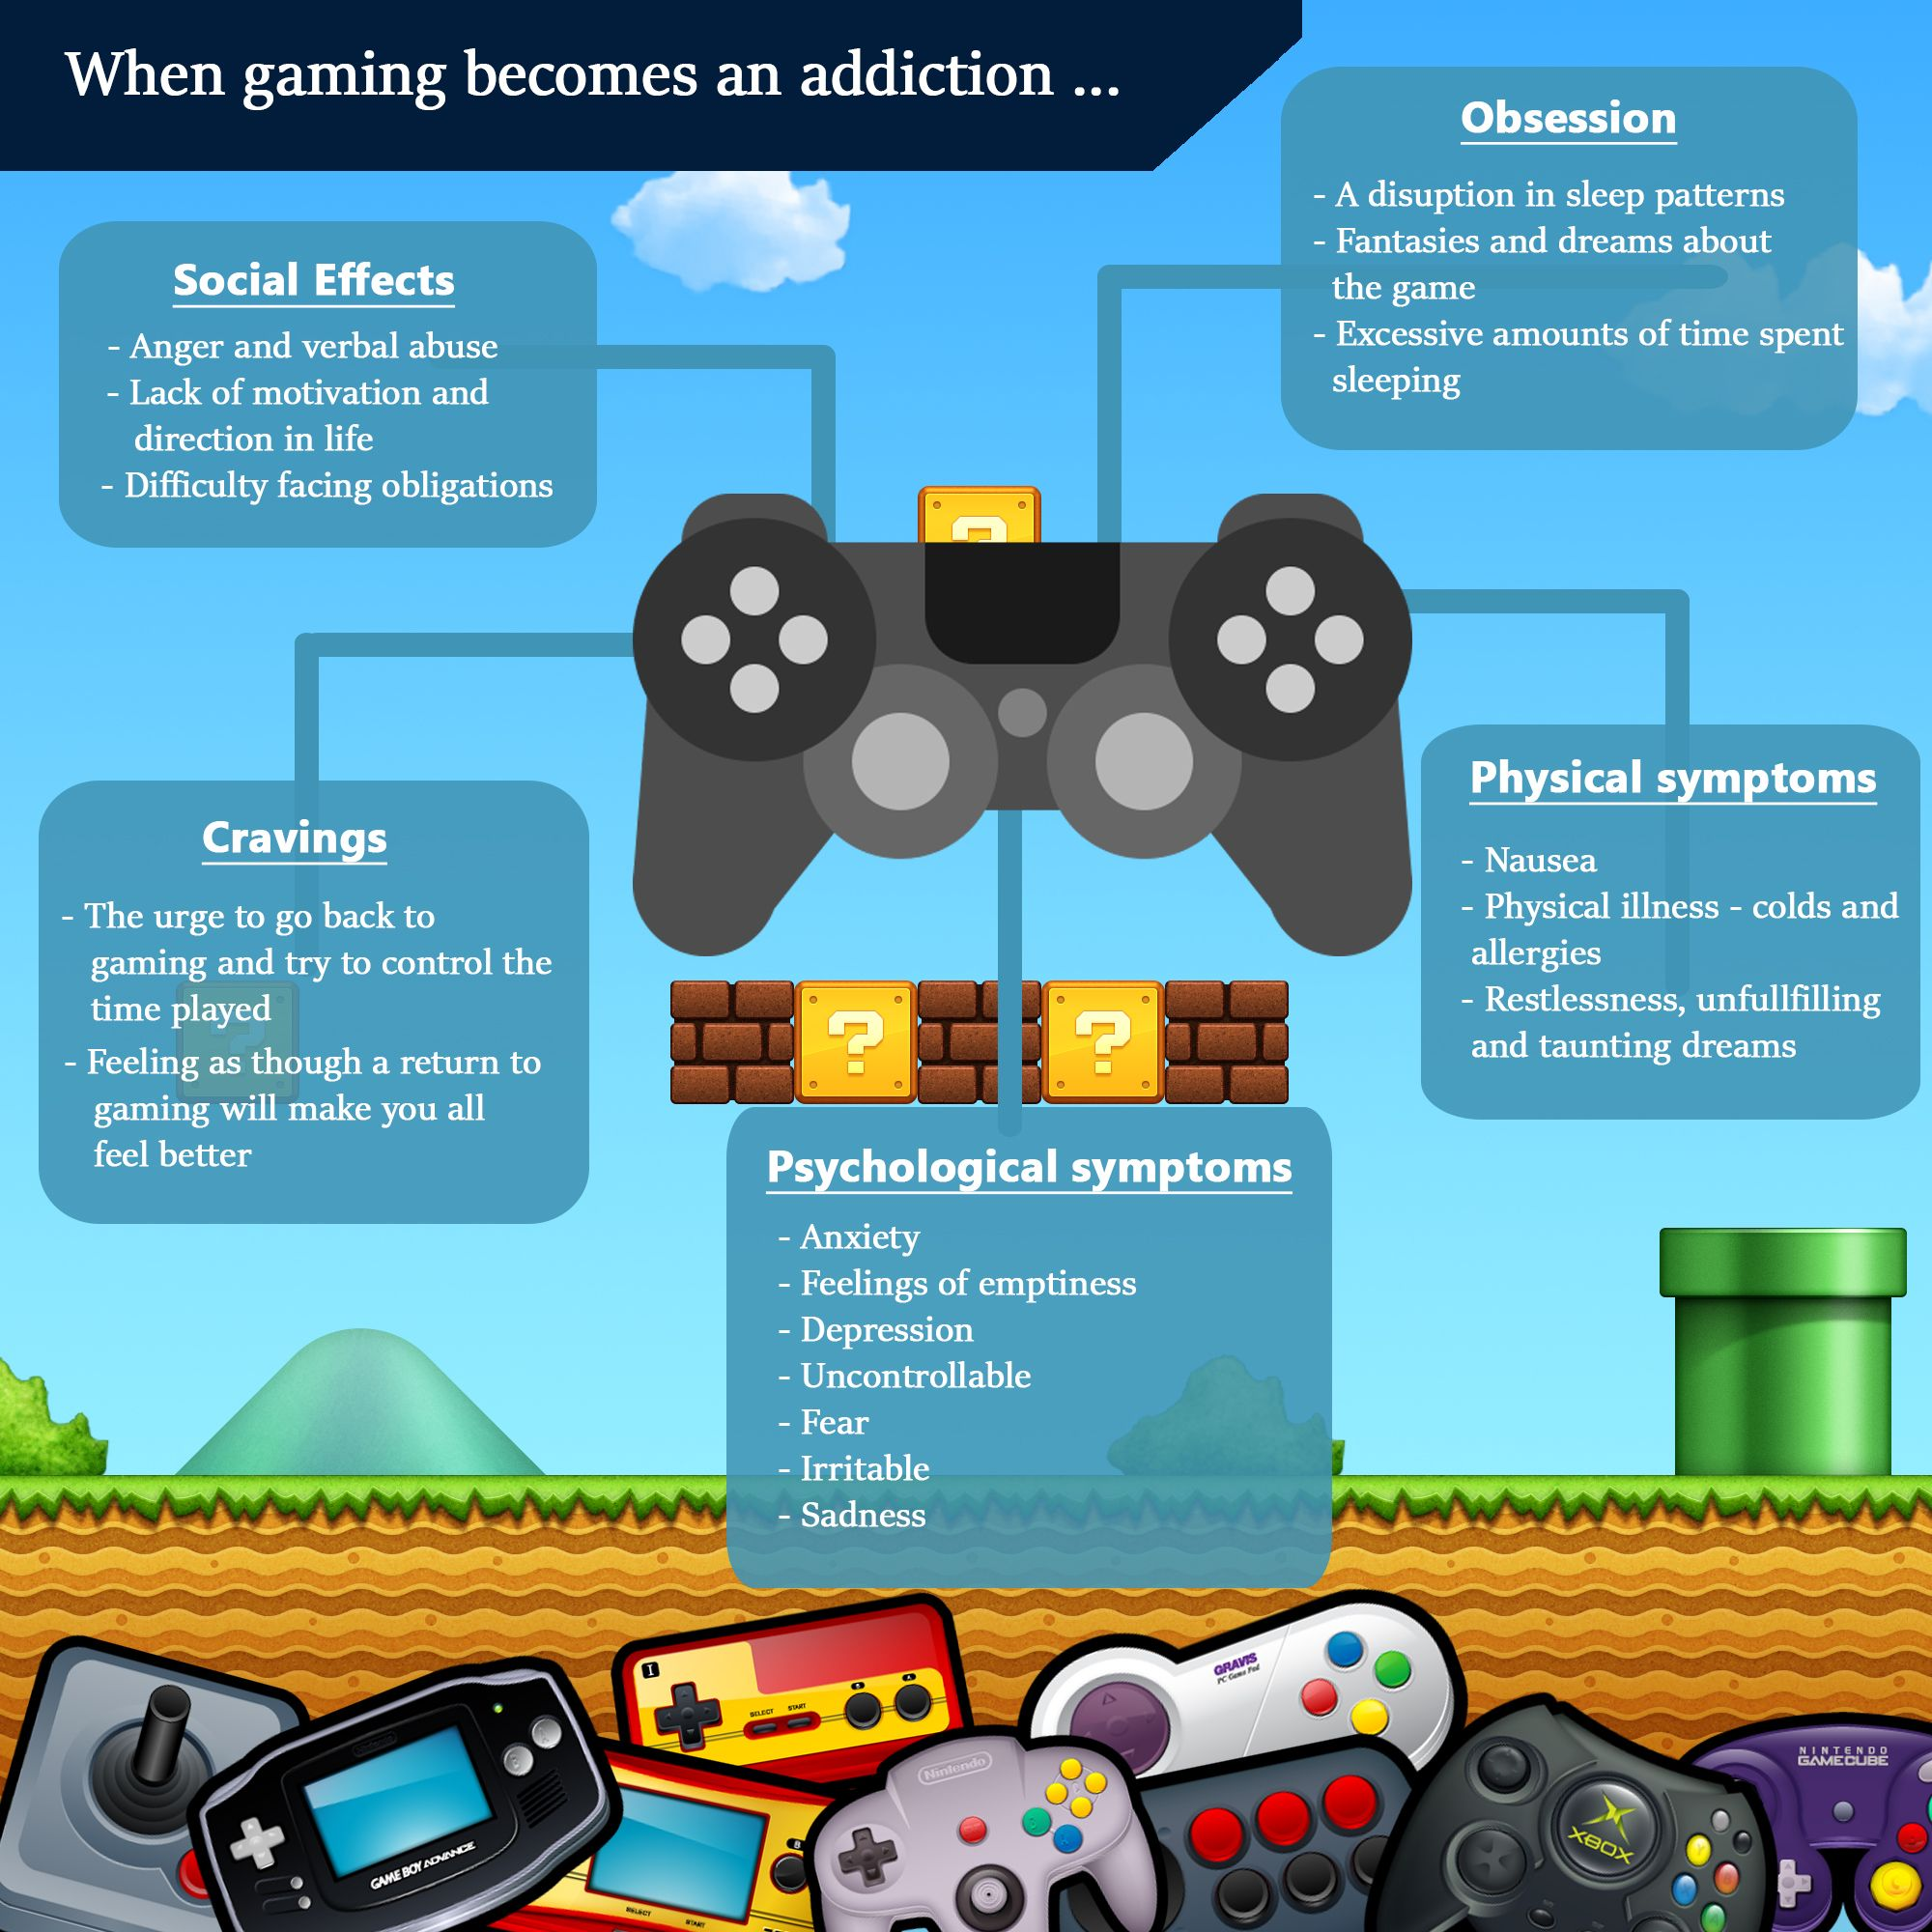 How to overcome game addiction